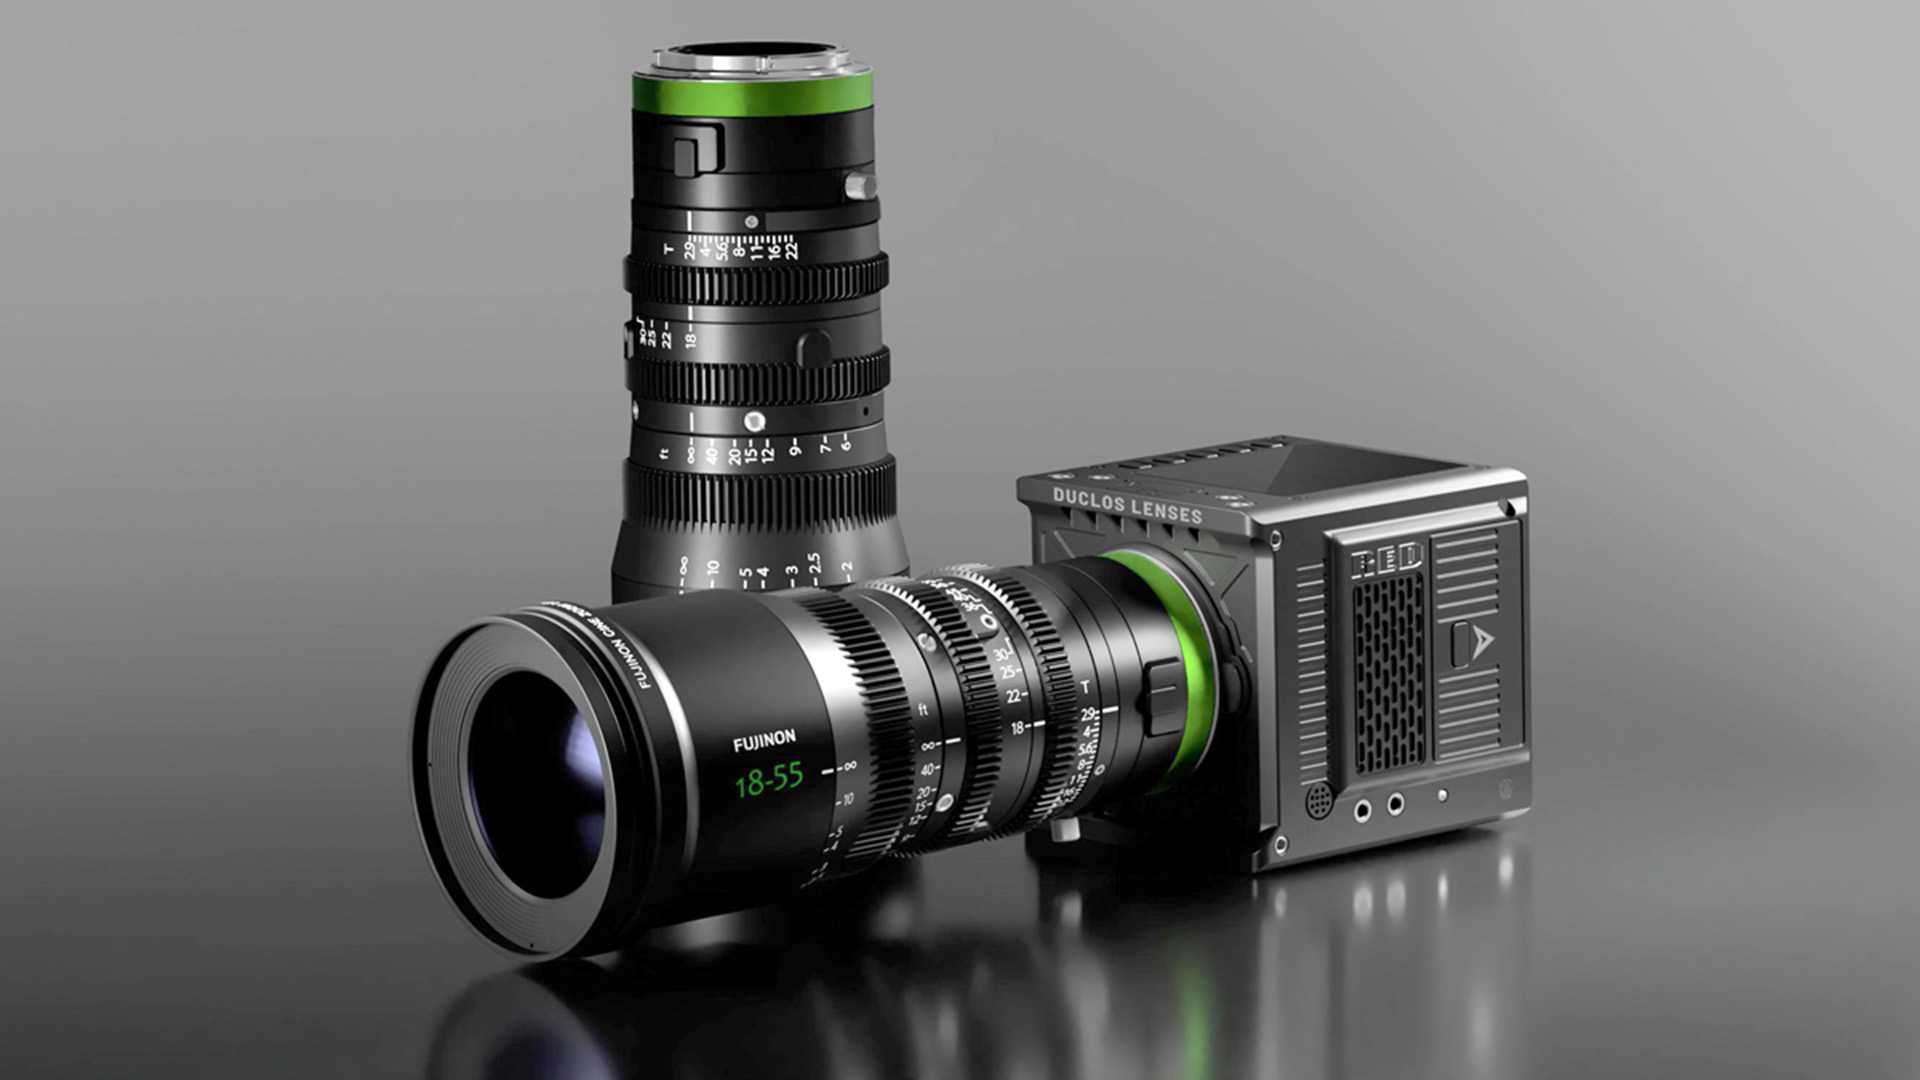 The Duclos MK-R lens conversion.